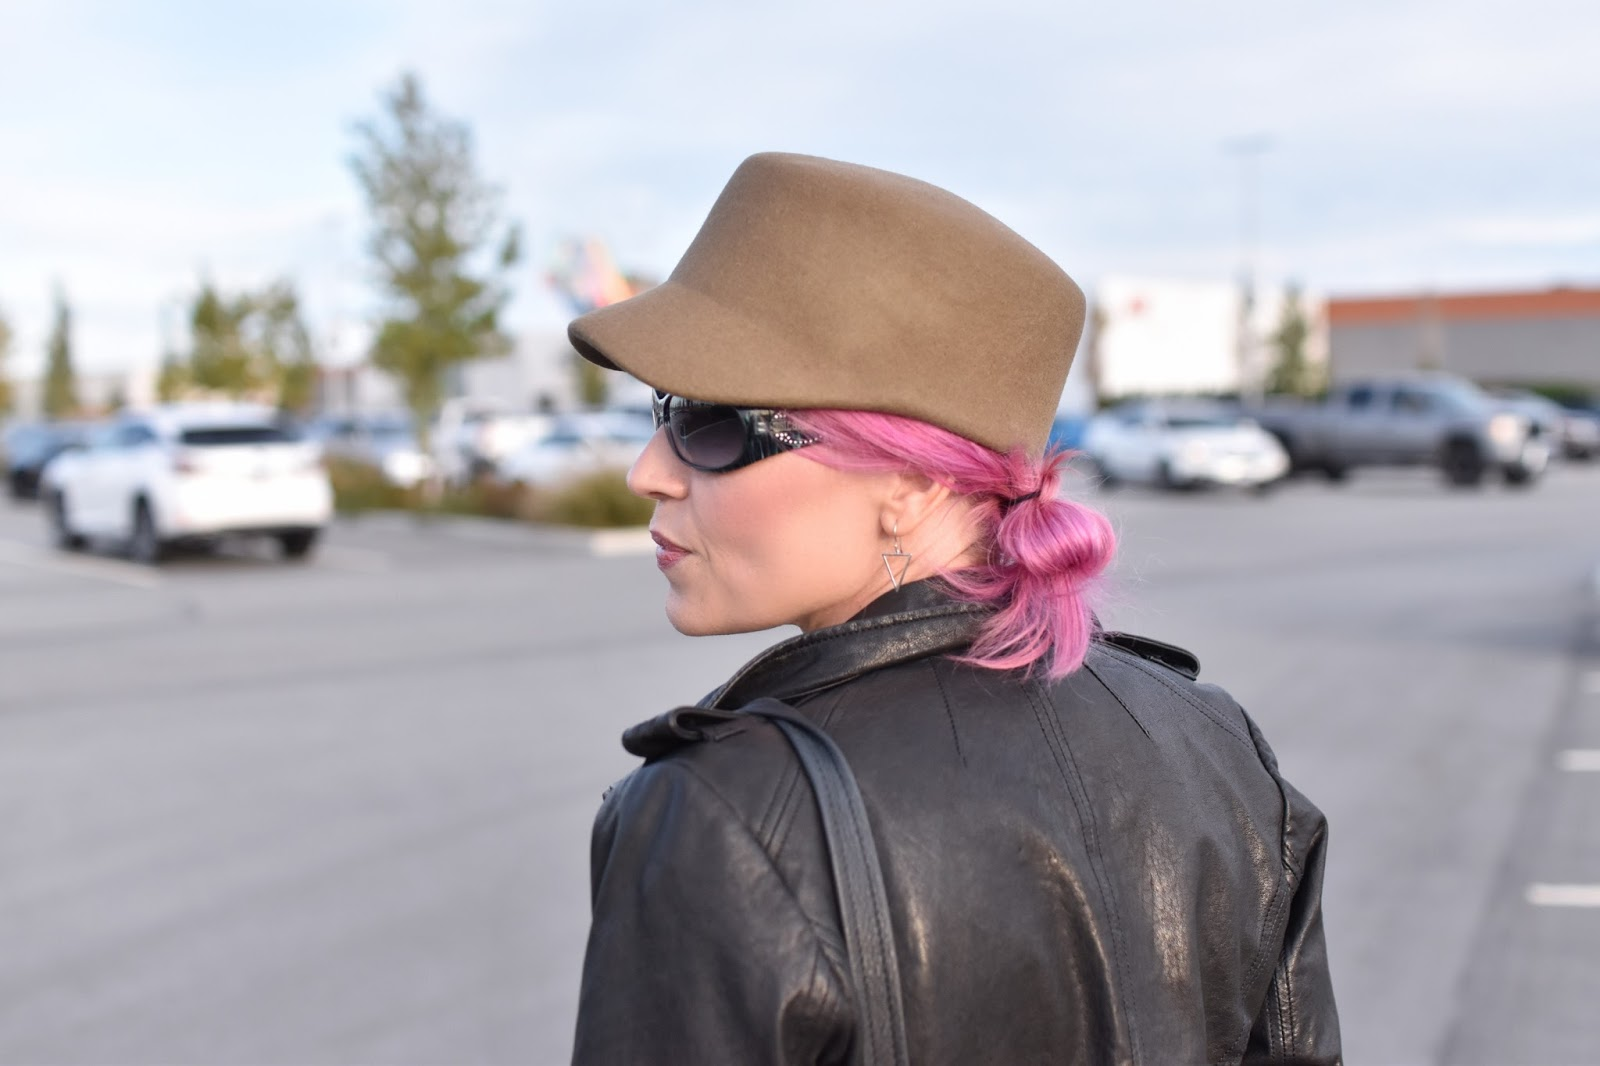 Monika Faulkner outfit inspiration - moto jacket, military-inspired felt cap, fuchsia hair